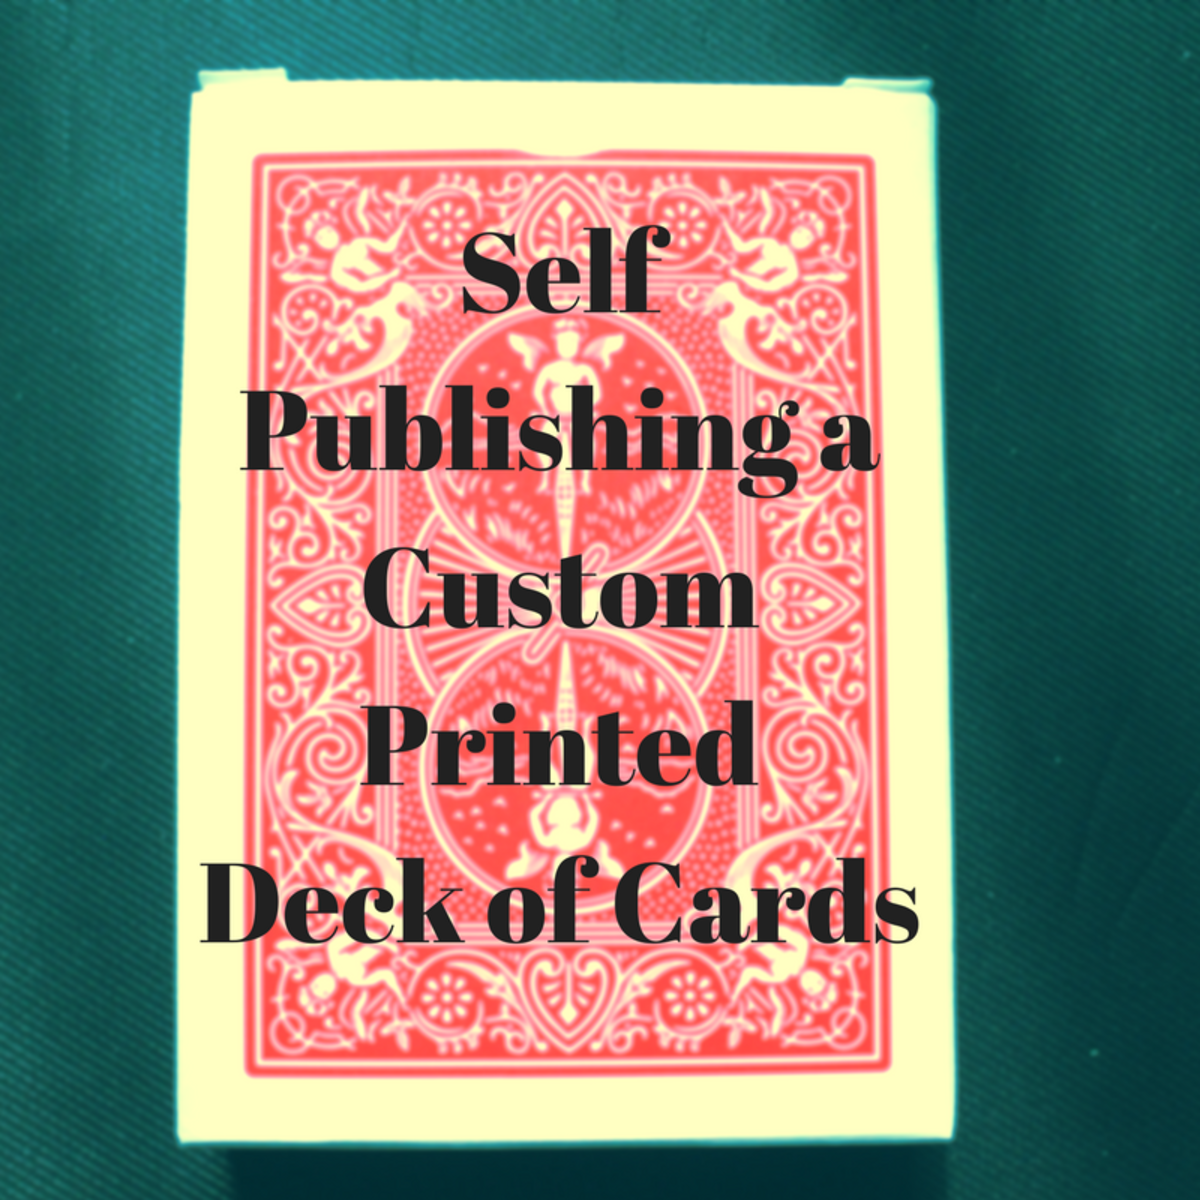 Self Publishing a Custom Printed Deck of Cards